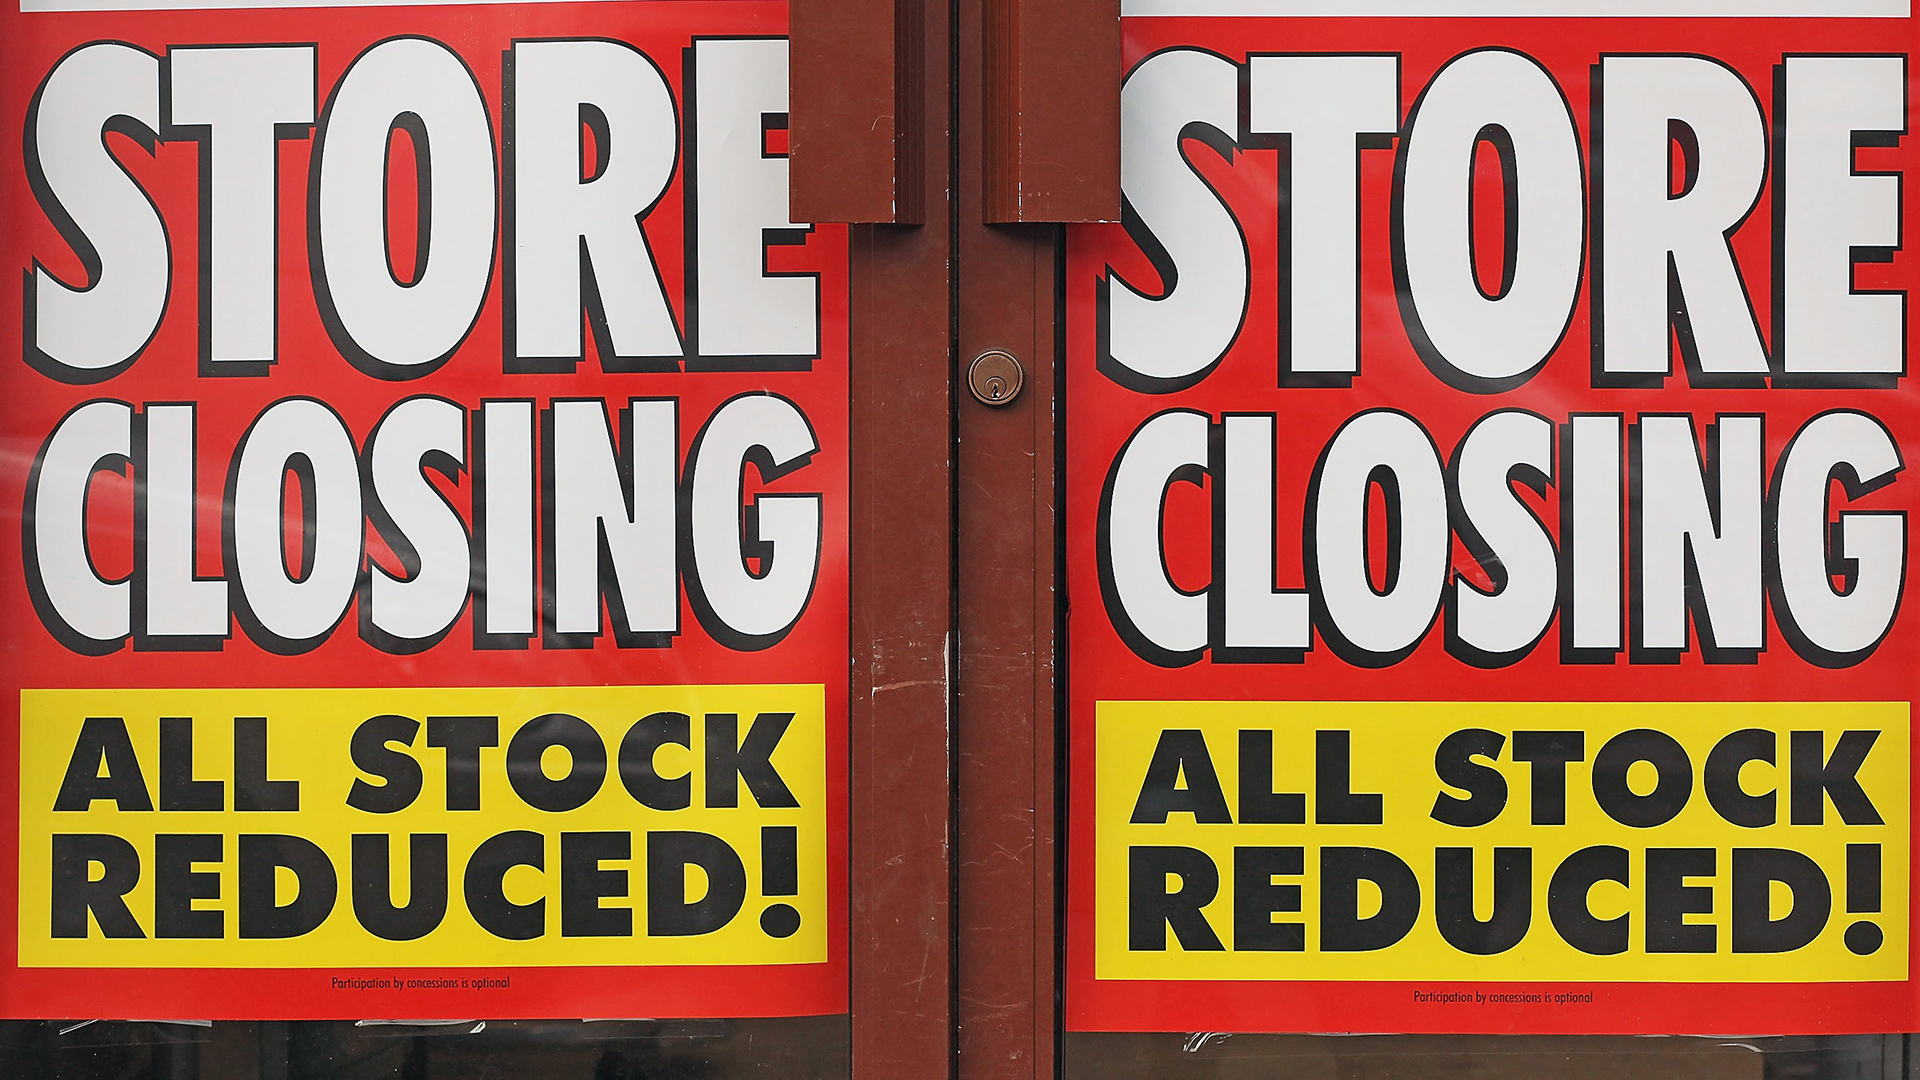 Store Closing generic sign-159532.jpg68496505